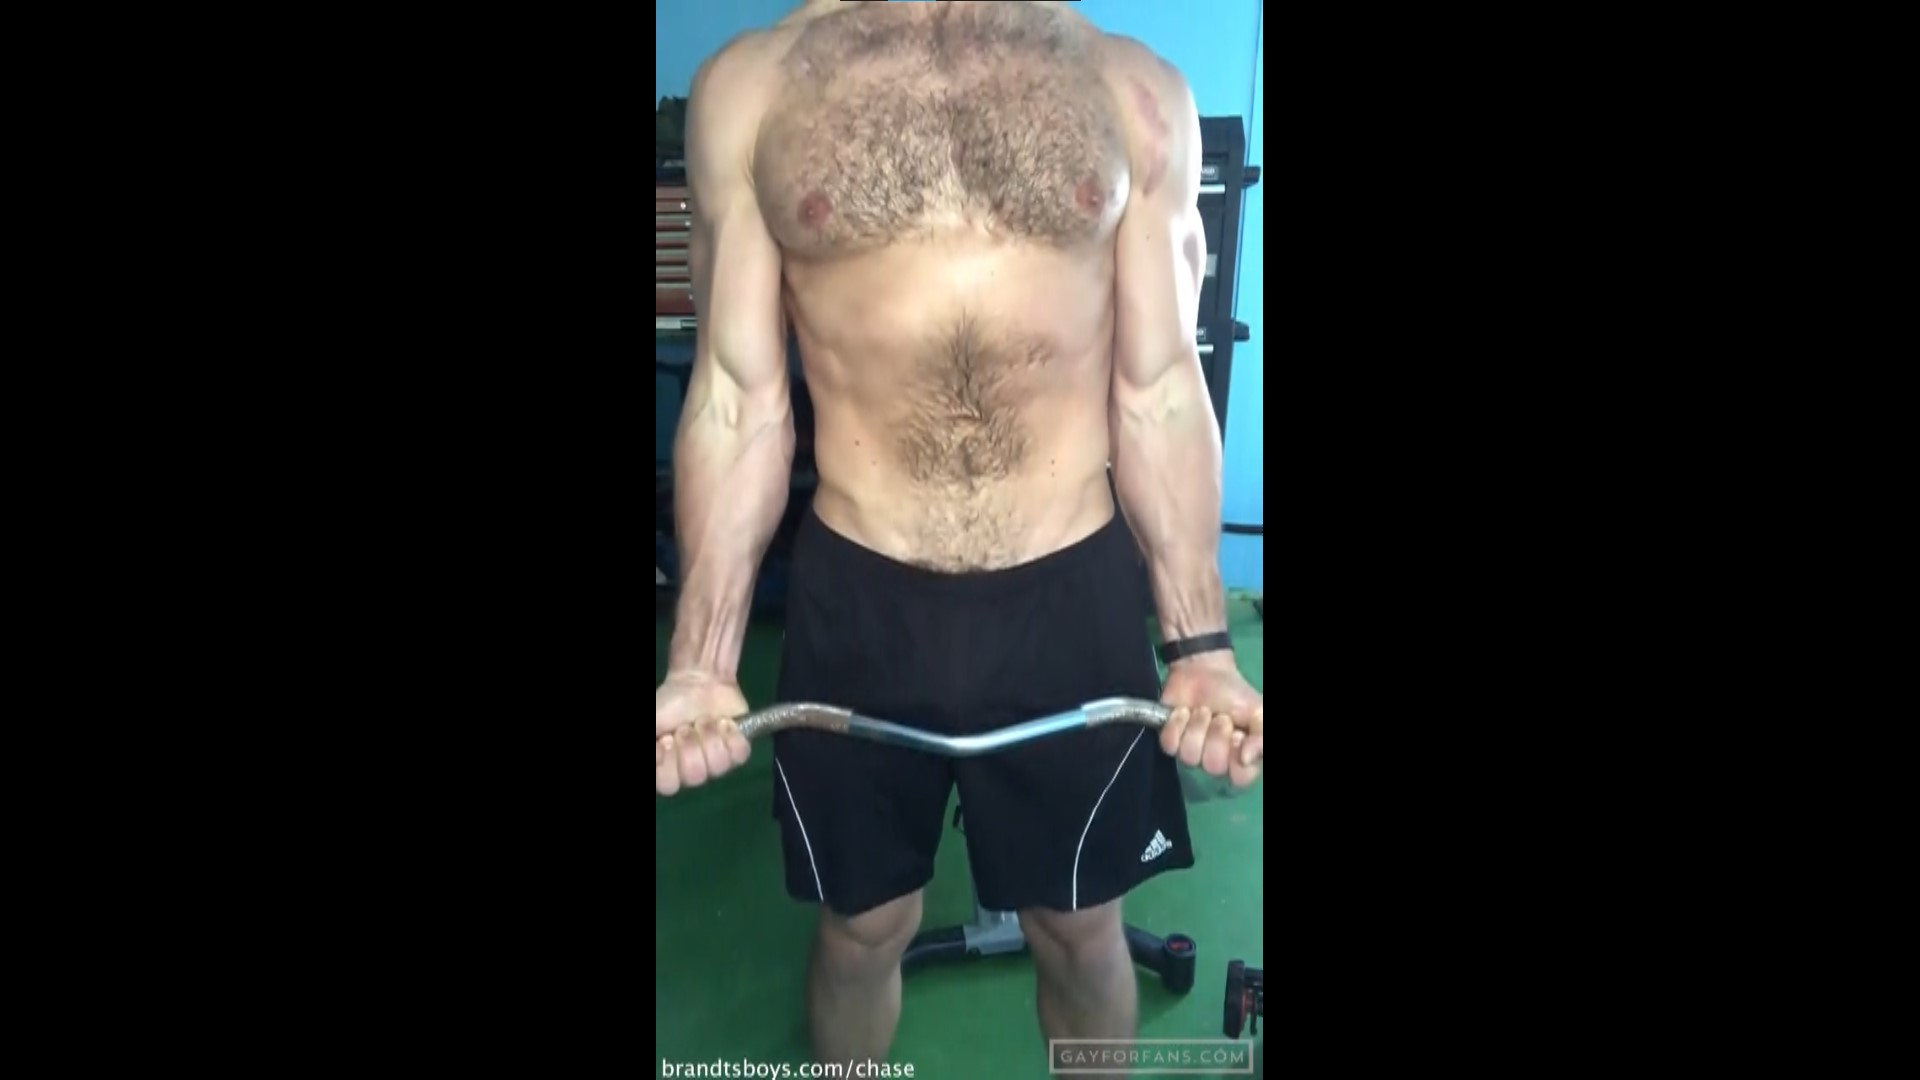 Chase Working Out And Jerking Off -  Chasexbrandt